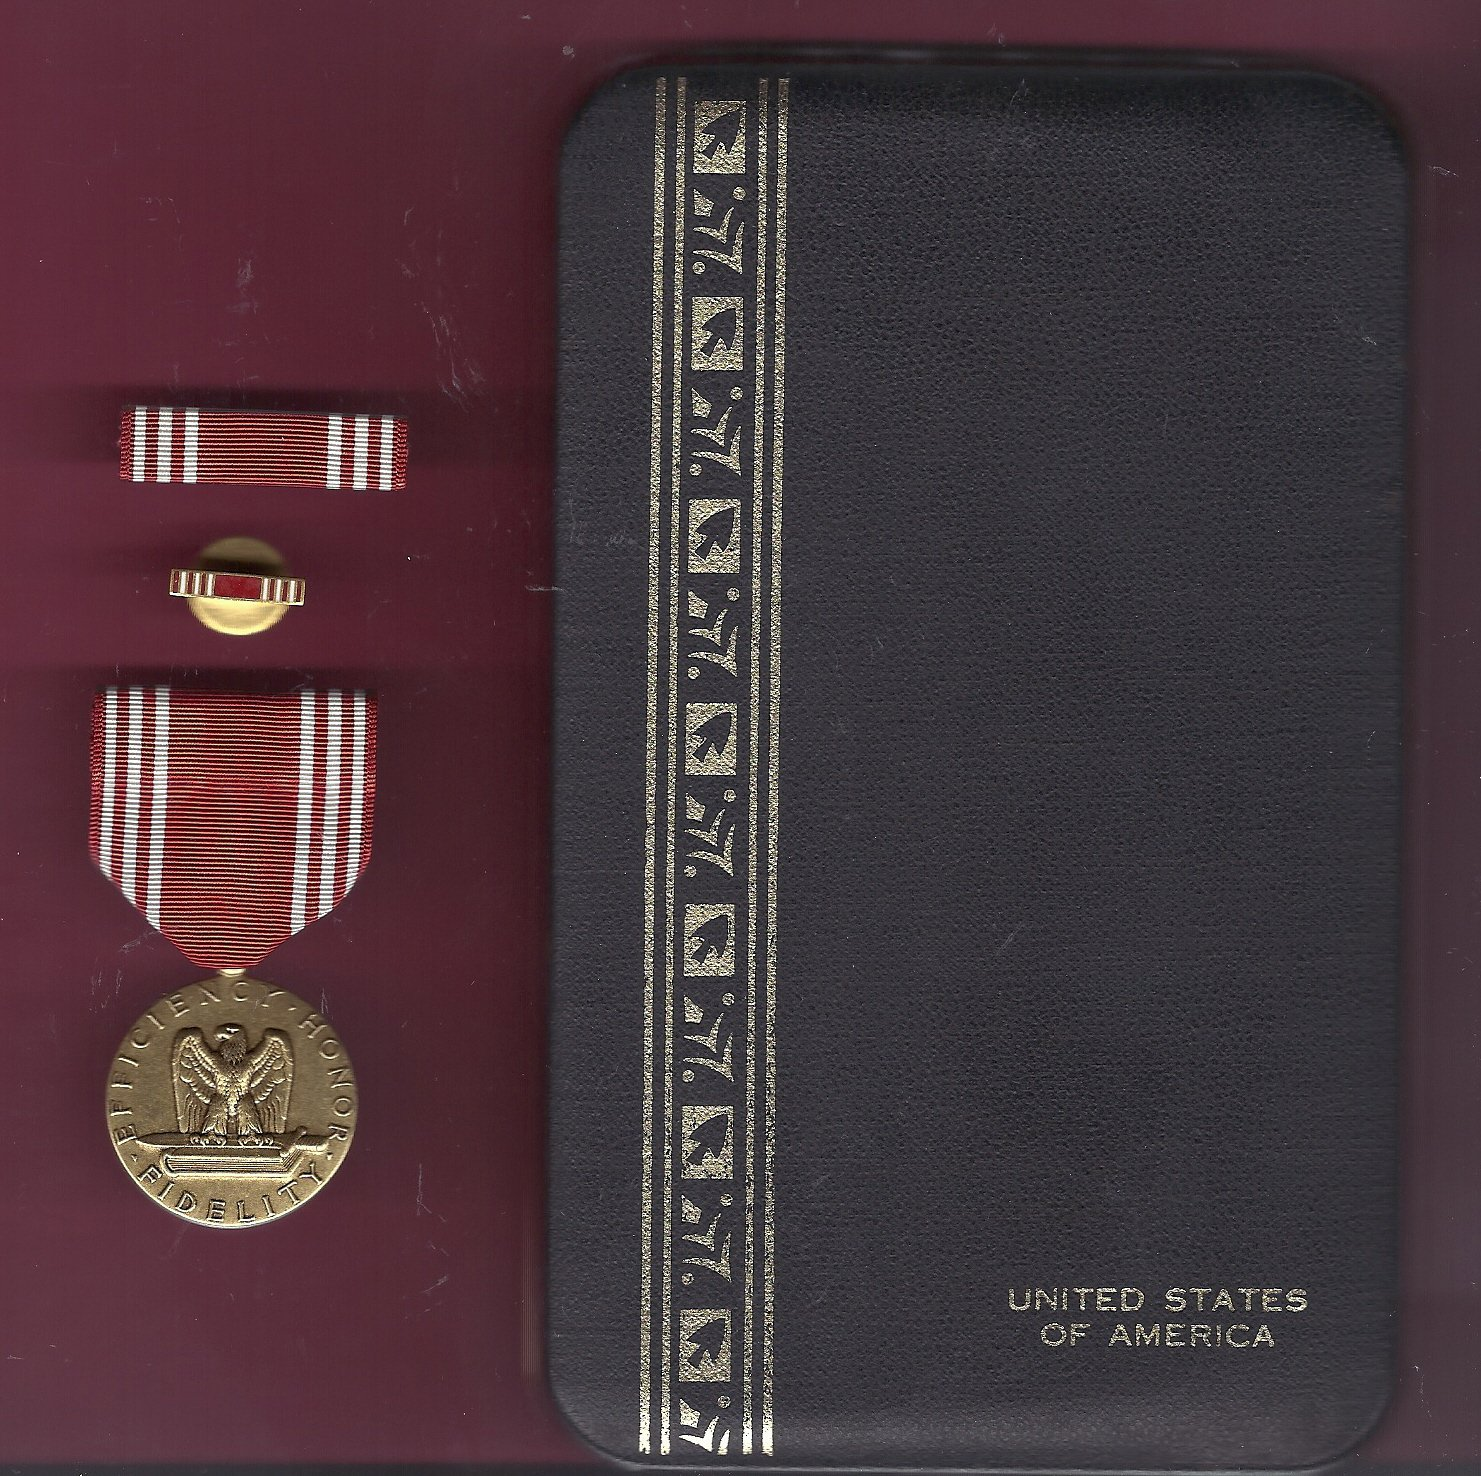 US Army Good Conduct medal in case with ribbon bar and lapel pin